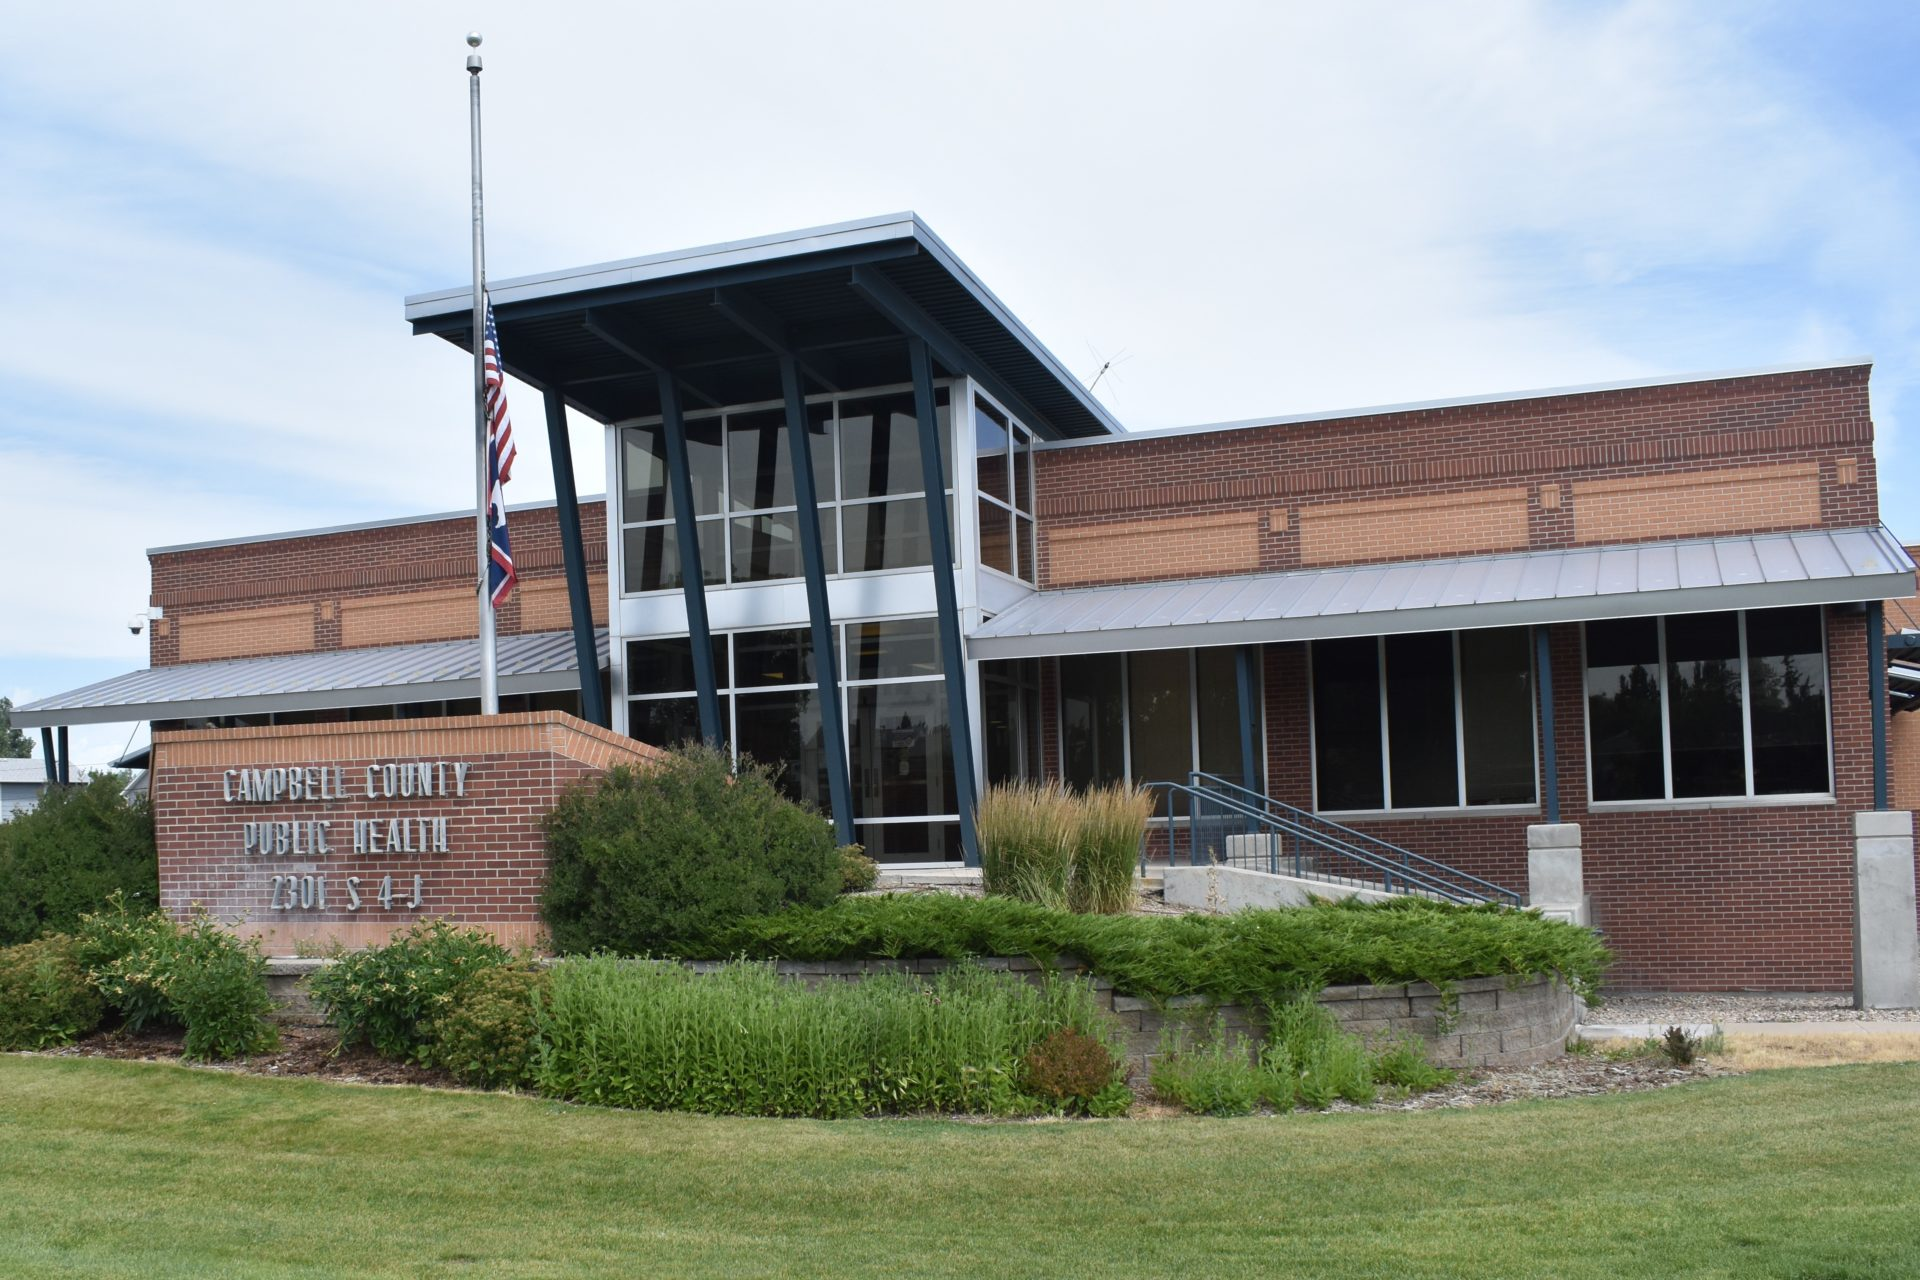 Campbell County Public Health building in Gillette (County 17 Photo/Taylor Helton)